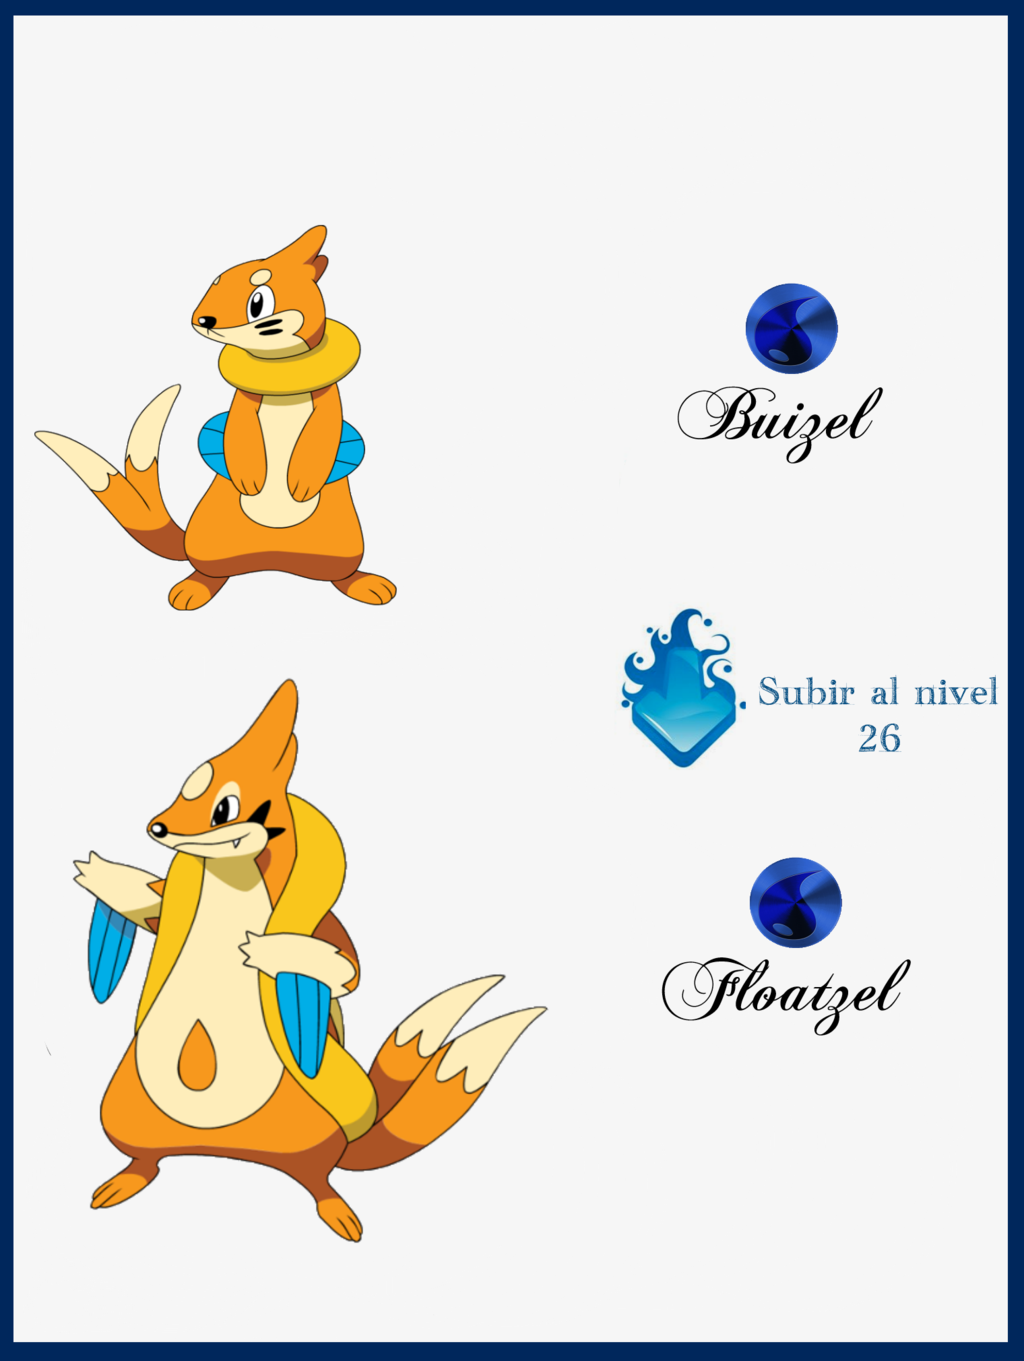 Buizel Evolution Chart Posted By Ethan Cunningham